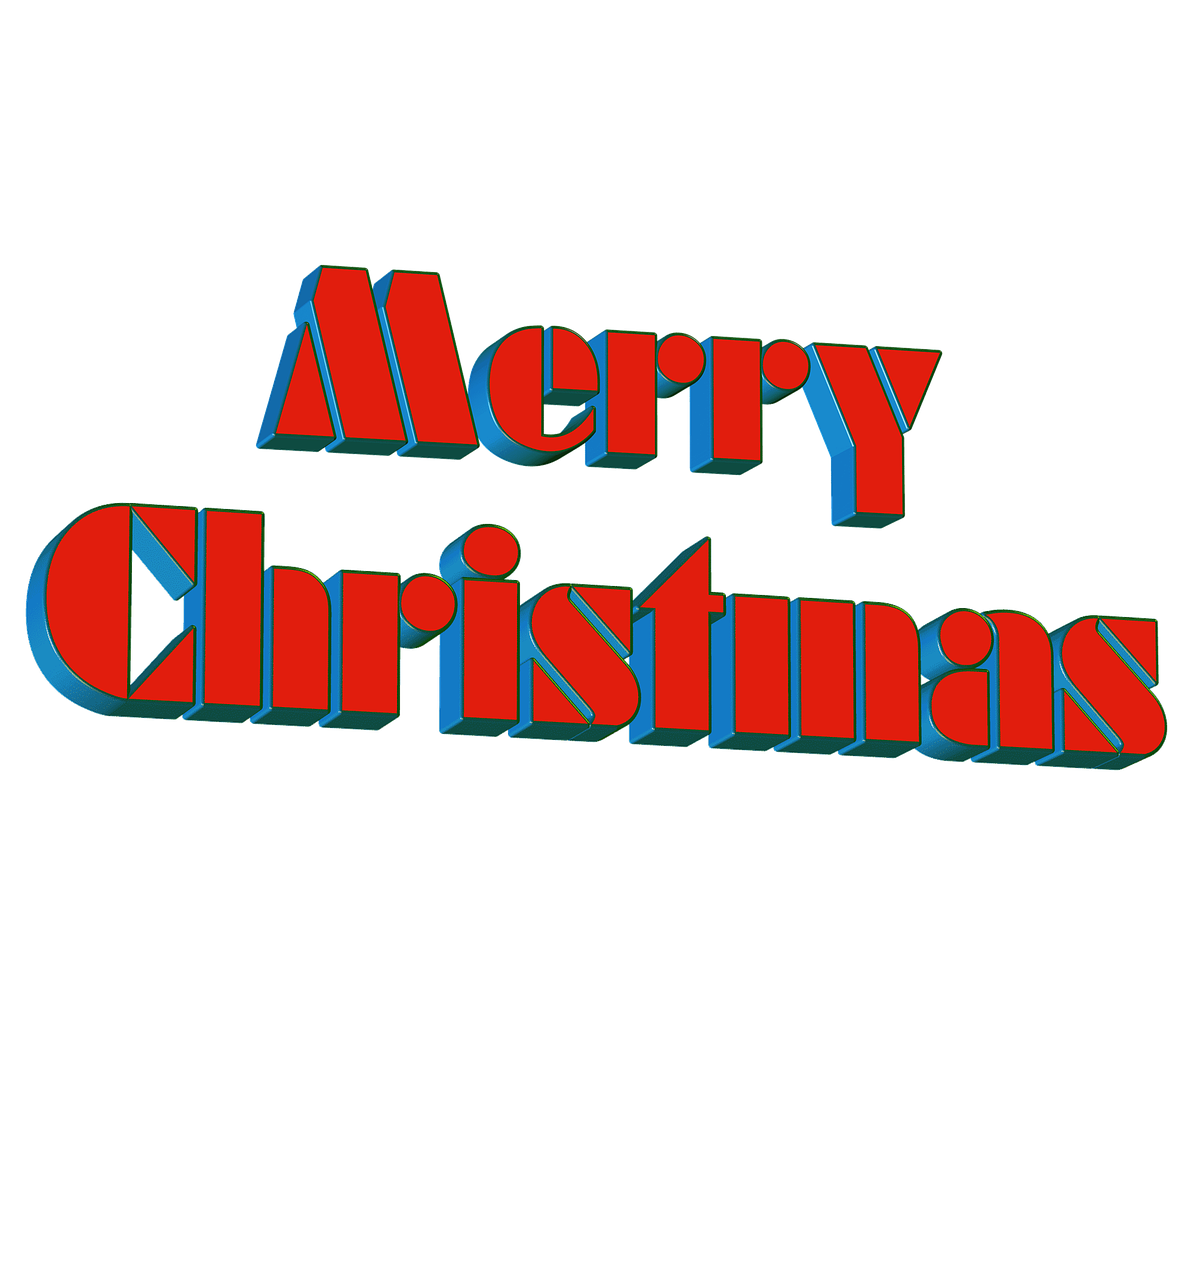 Merry Christmas Fonts Images.Merry Christmas Fonts 3d Lettering Isolated Free Photo